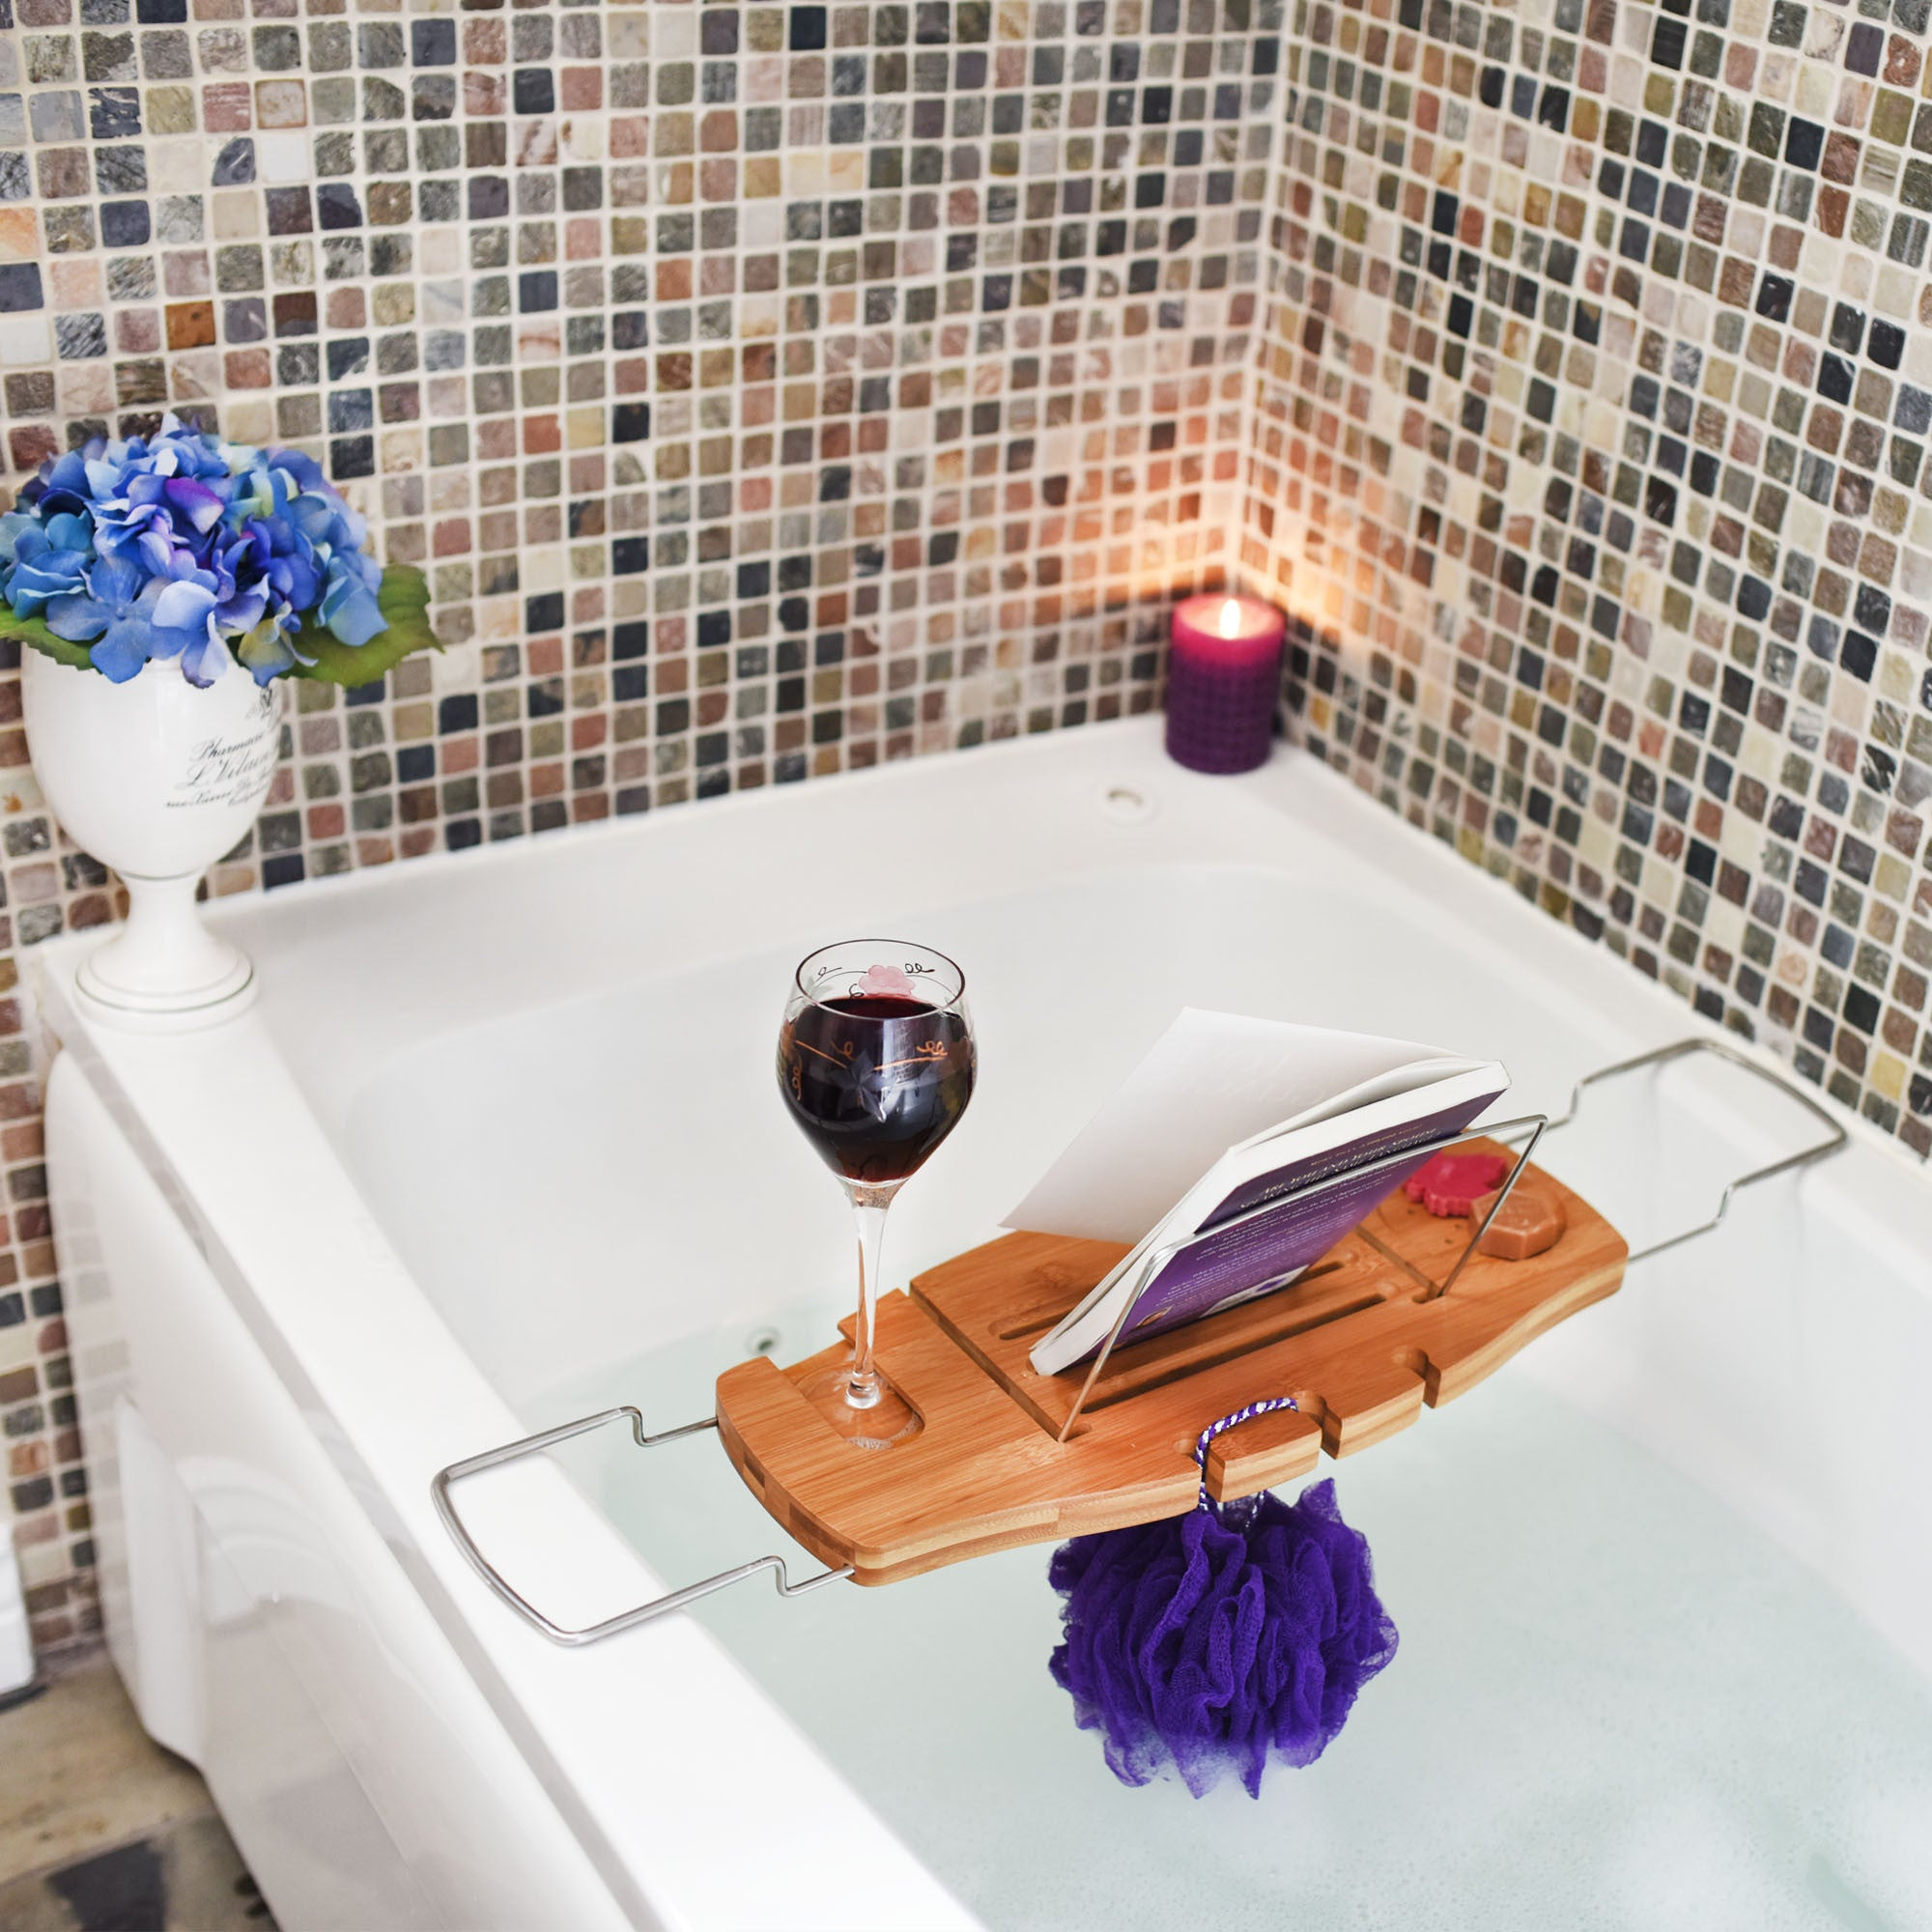 ... Luxury Bamboo Bathtub Caddy Tray With Reading Rack And Wine Glass  Holder In The Bath Tub ...